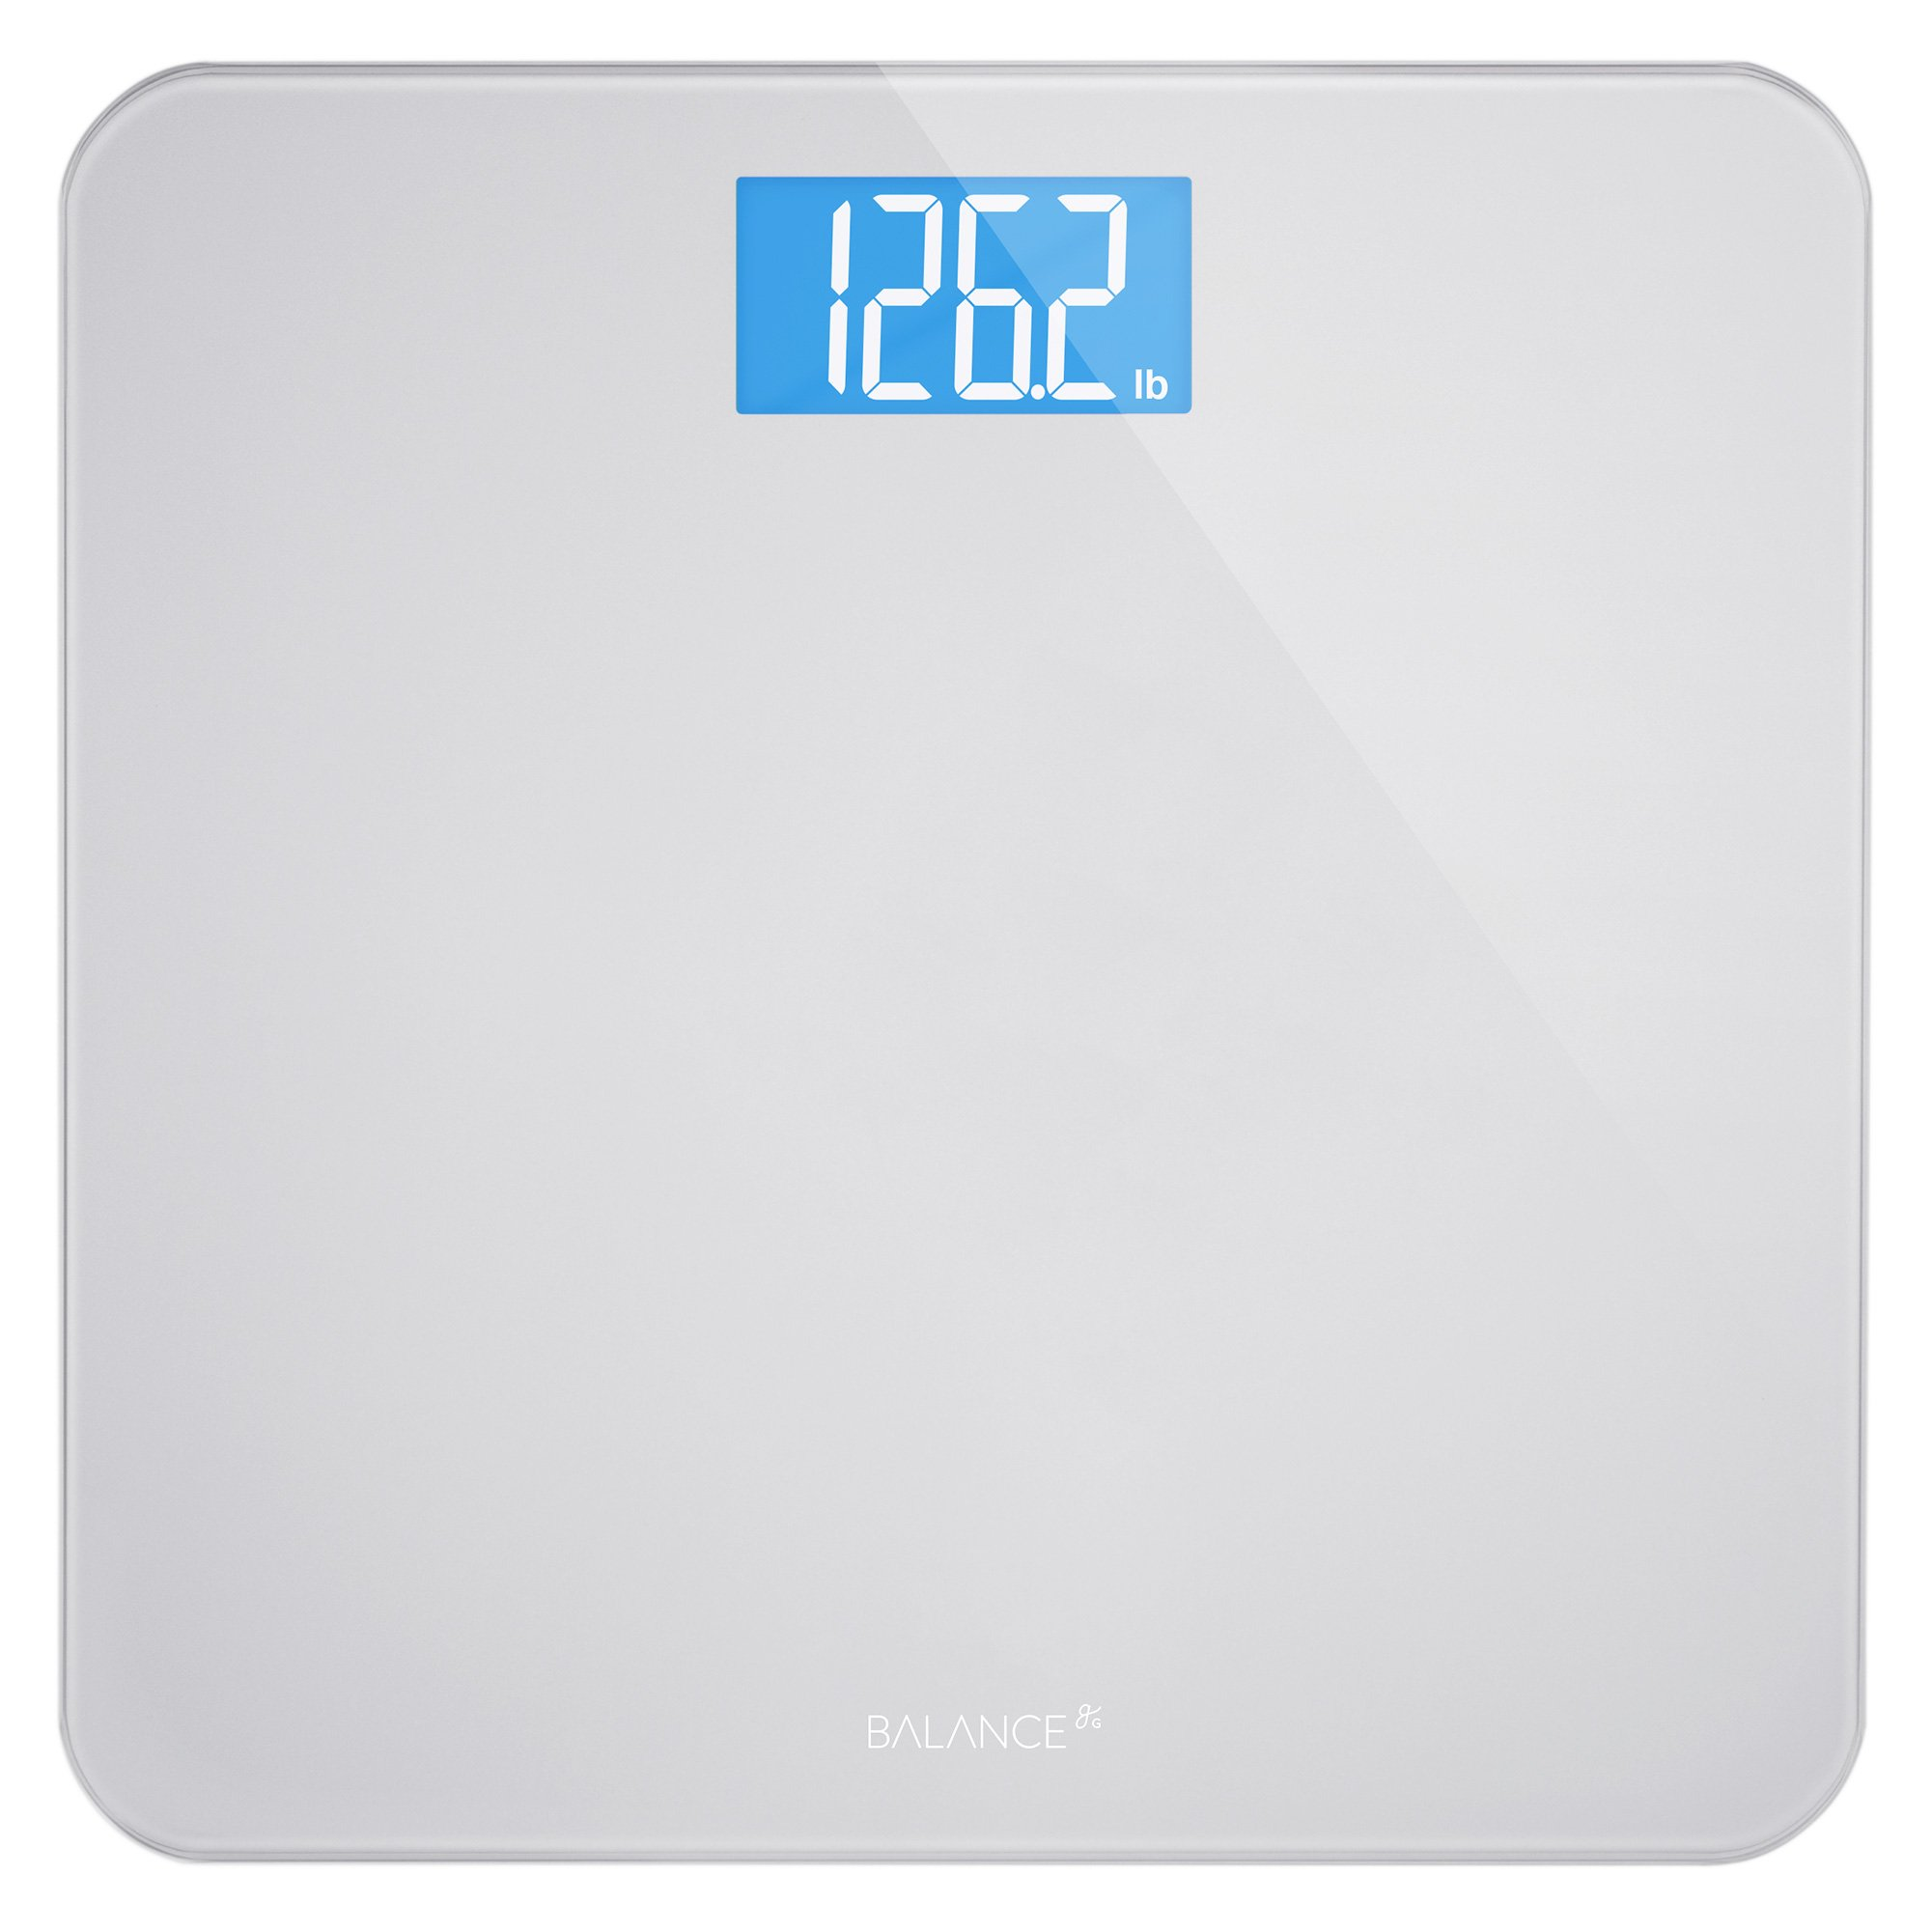 Digital Body Weight Bathroom Scale by GreaterGoods, Large Glass Top, Backlit Display, Precision Measurements (Digital Scale New) by Greater Goods